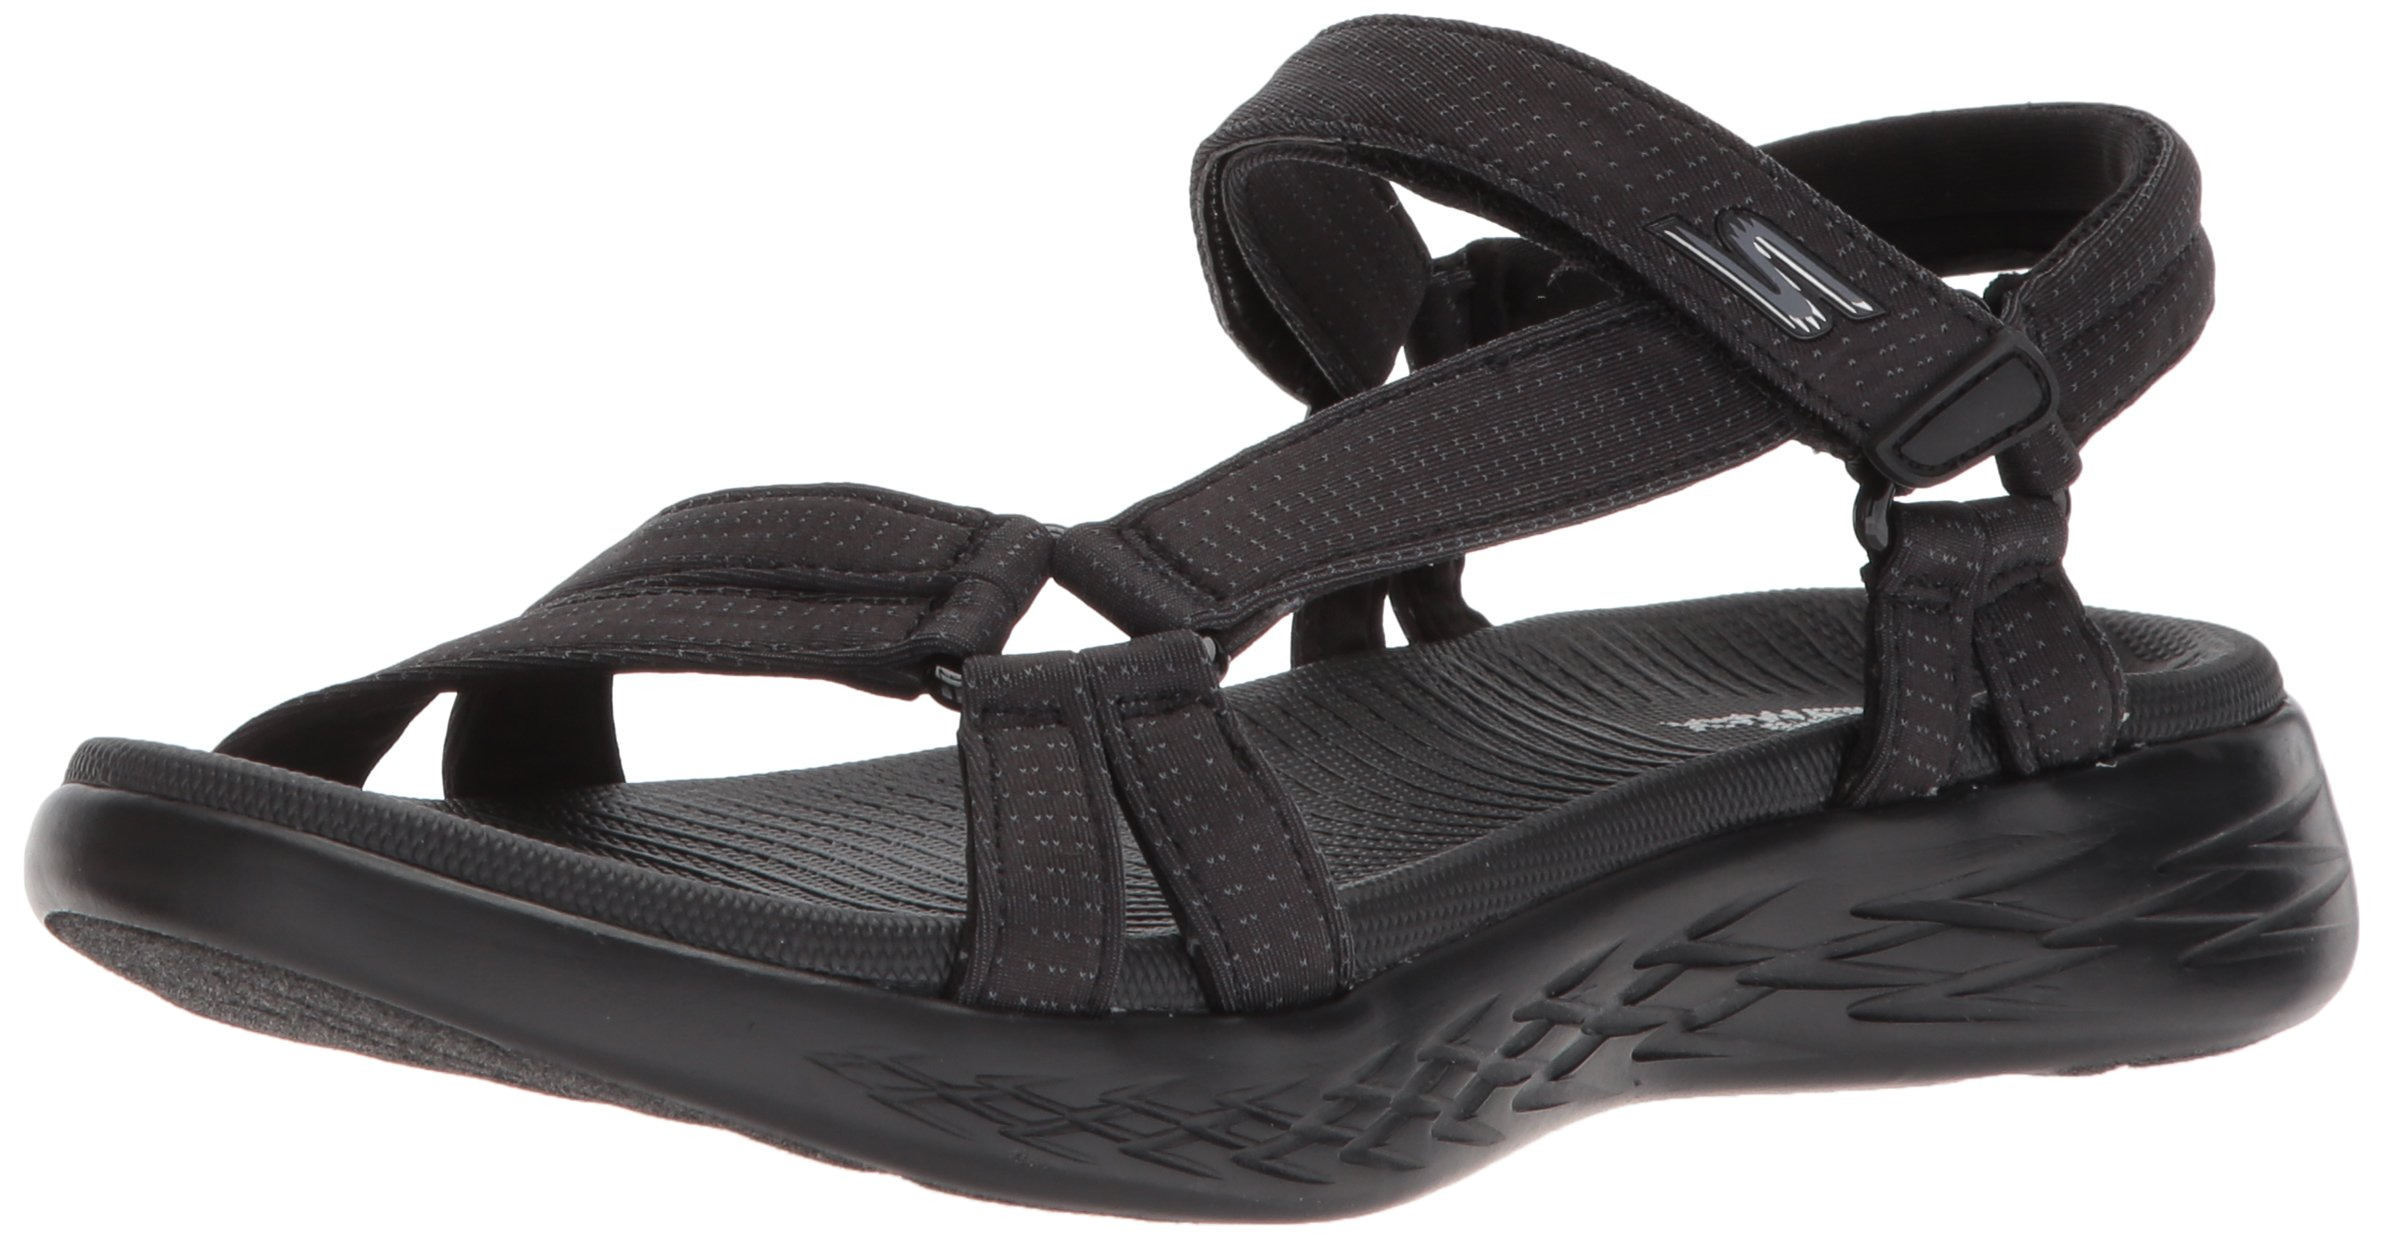 Skechers Performance Women's on-The-Go 600-Brilliancy Sport Sandal, Black, 8 M US